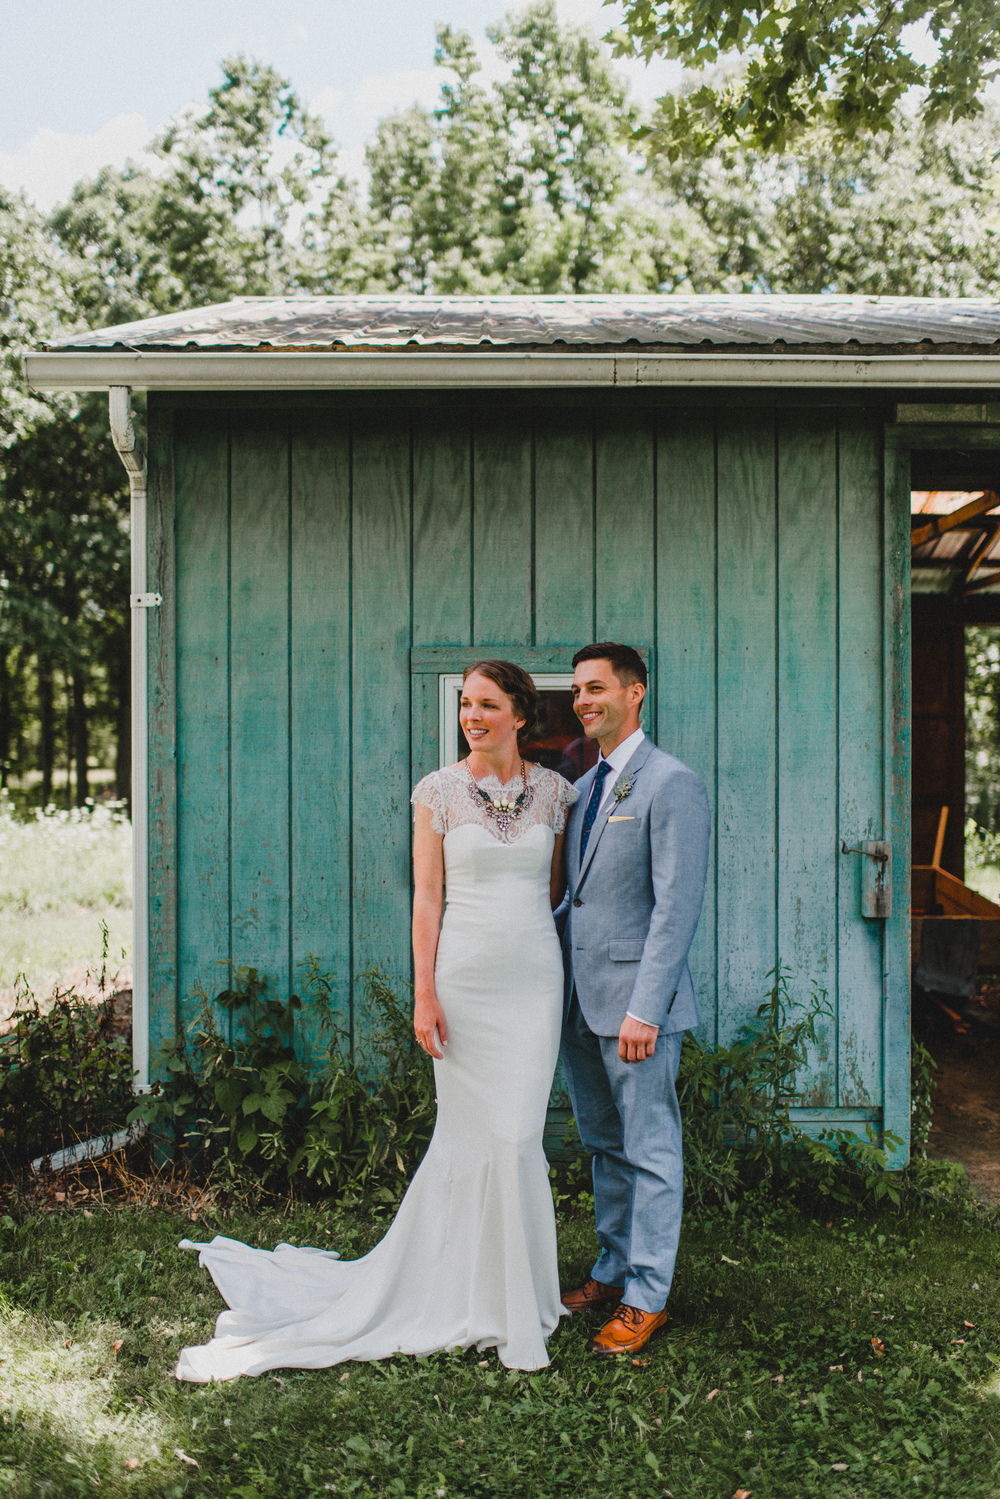 Intimate-Backyard-Farmhouse-Ohio-Wedding-Andi+Ben_Mallory+Justin-Photographers-72.JPG